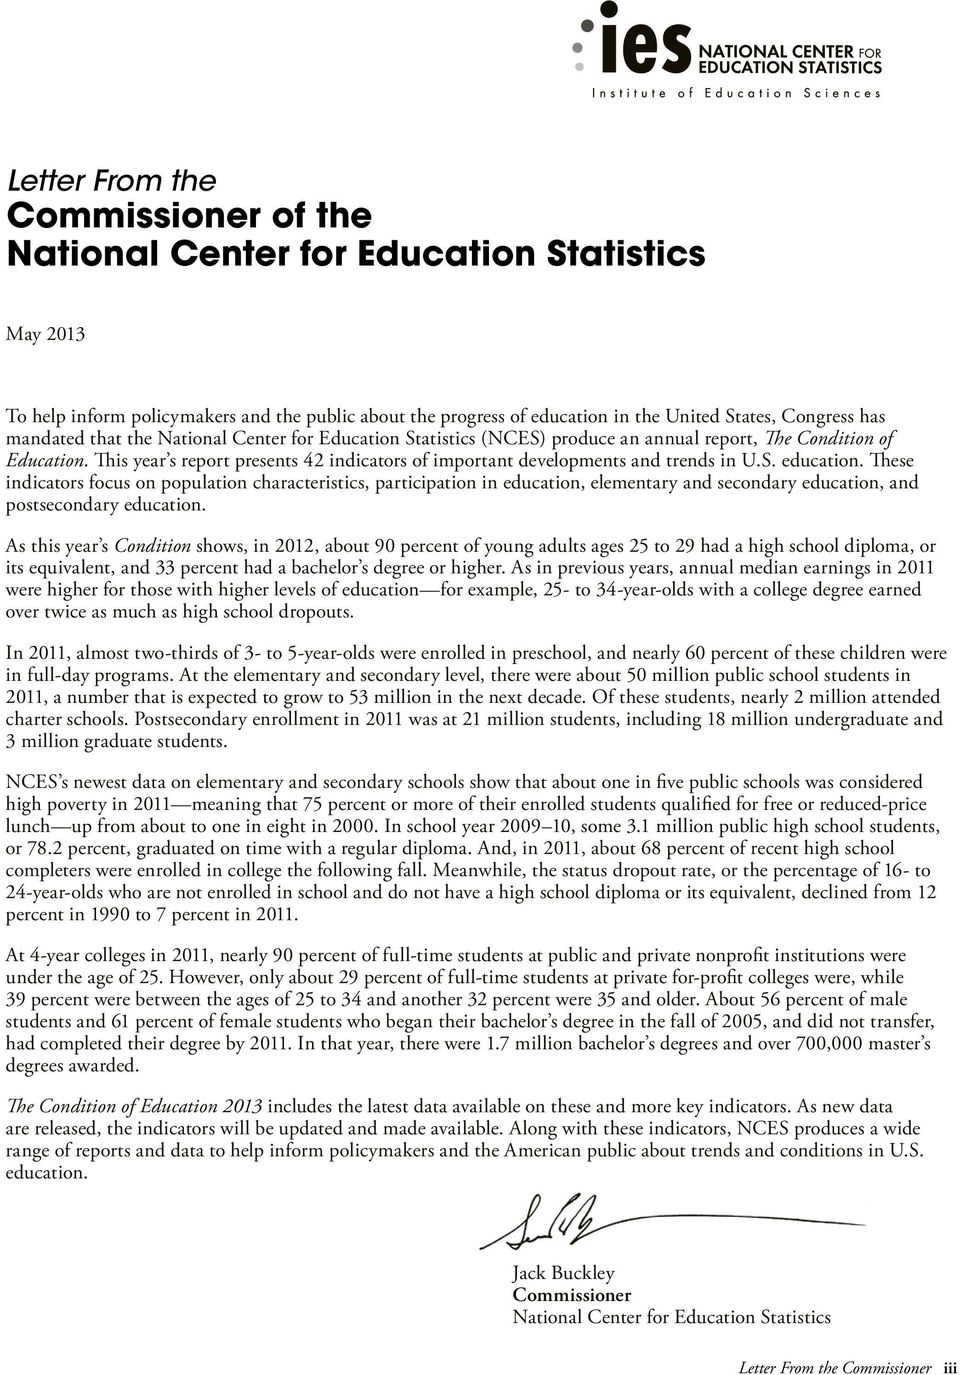 This year s report presents 42 indicators of important developments and trends in U.S. education.